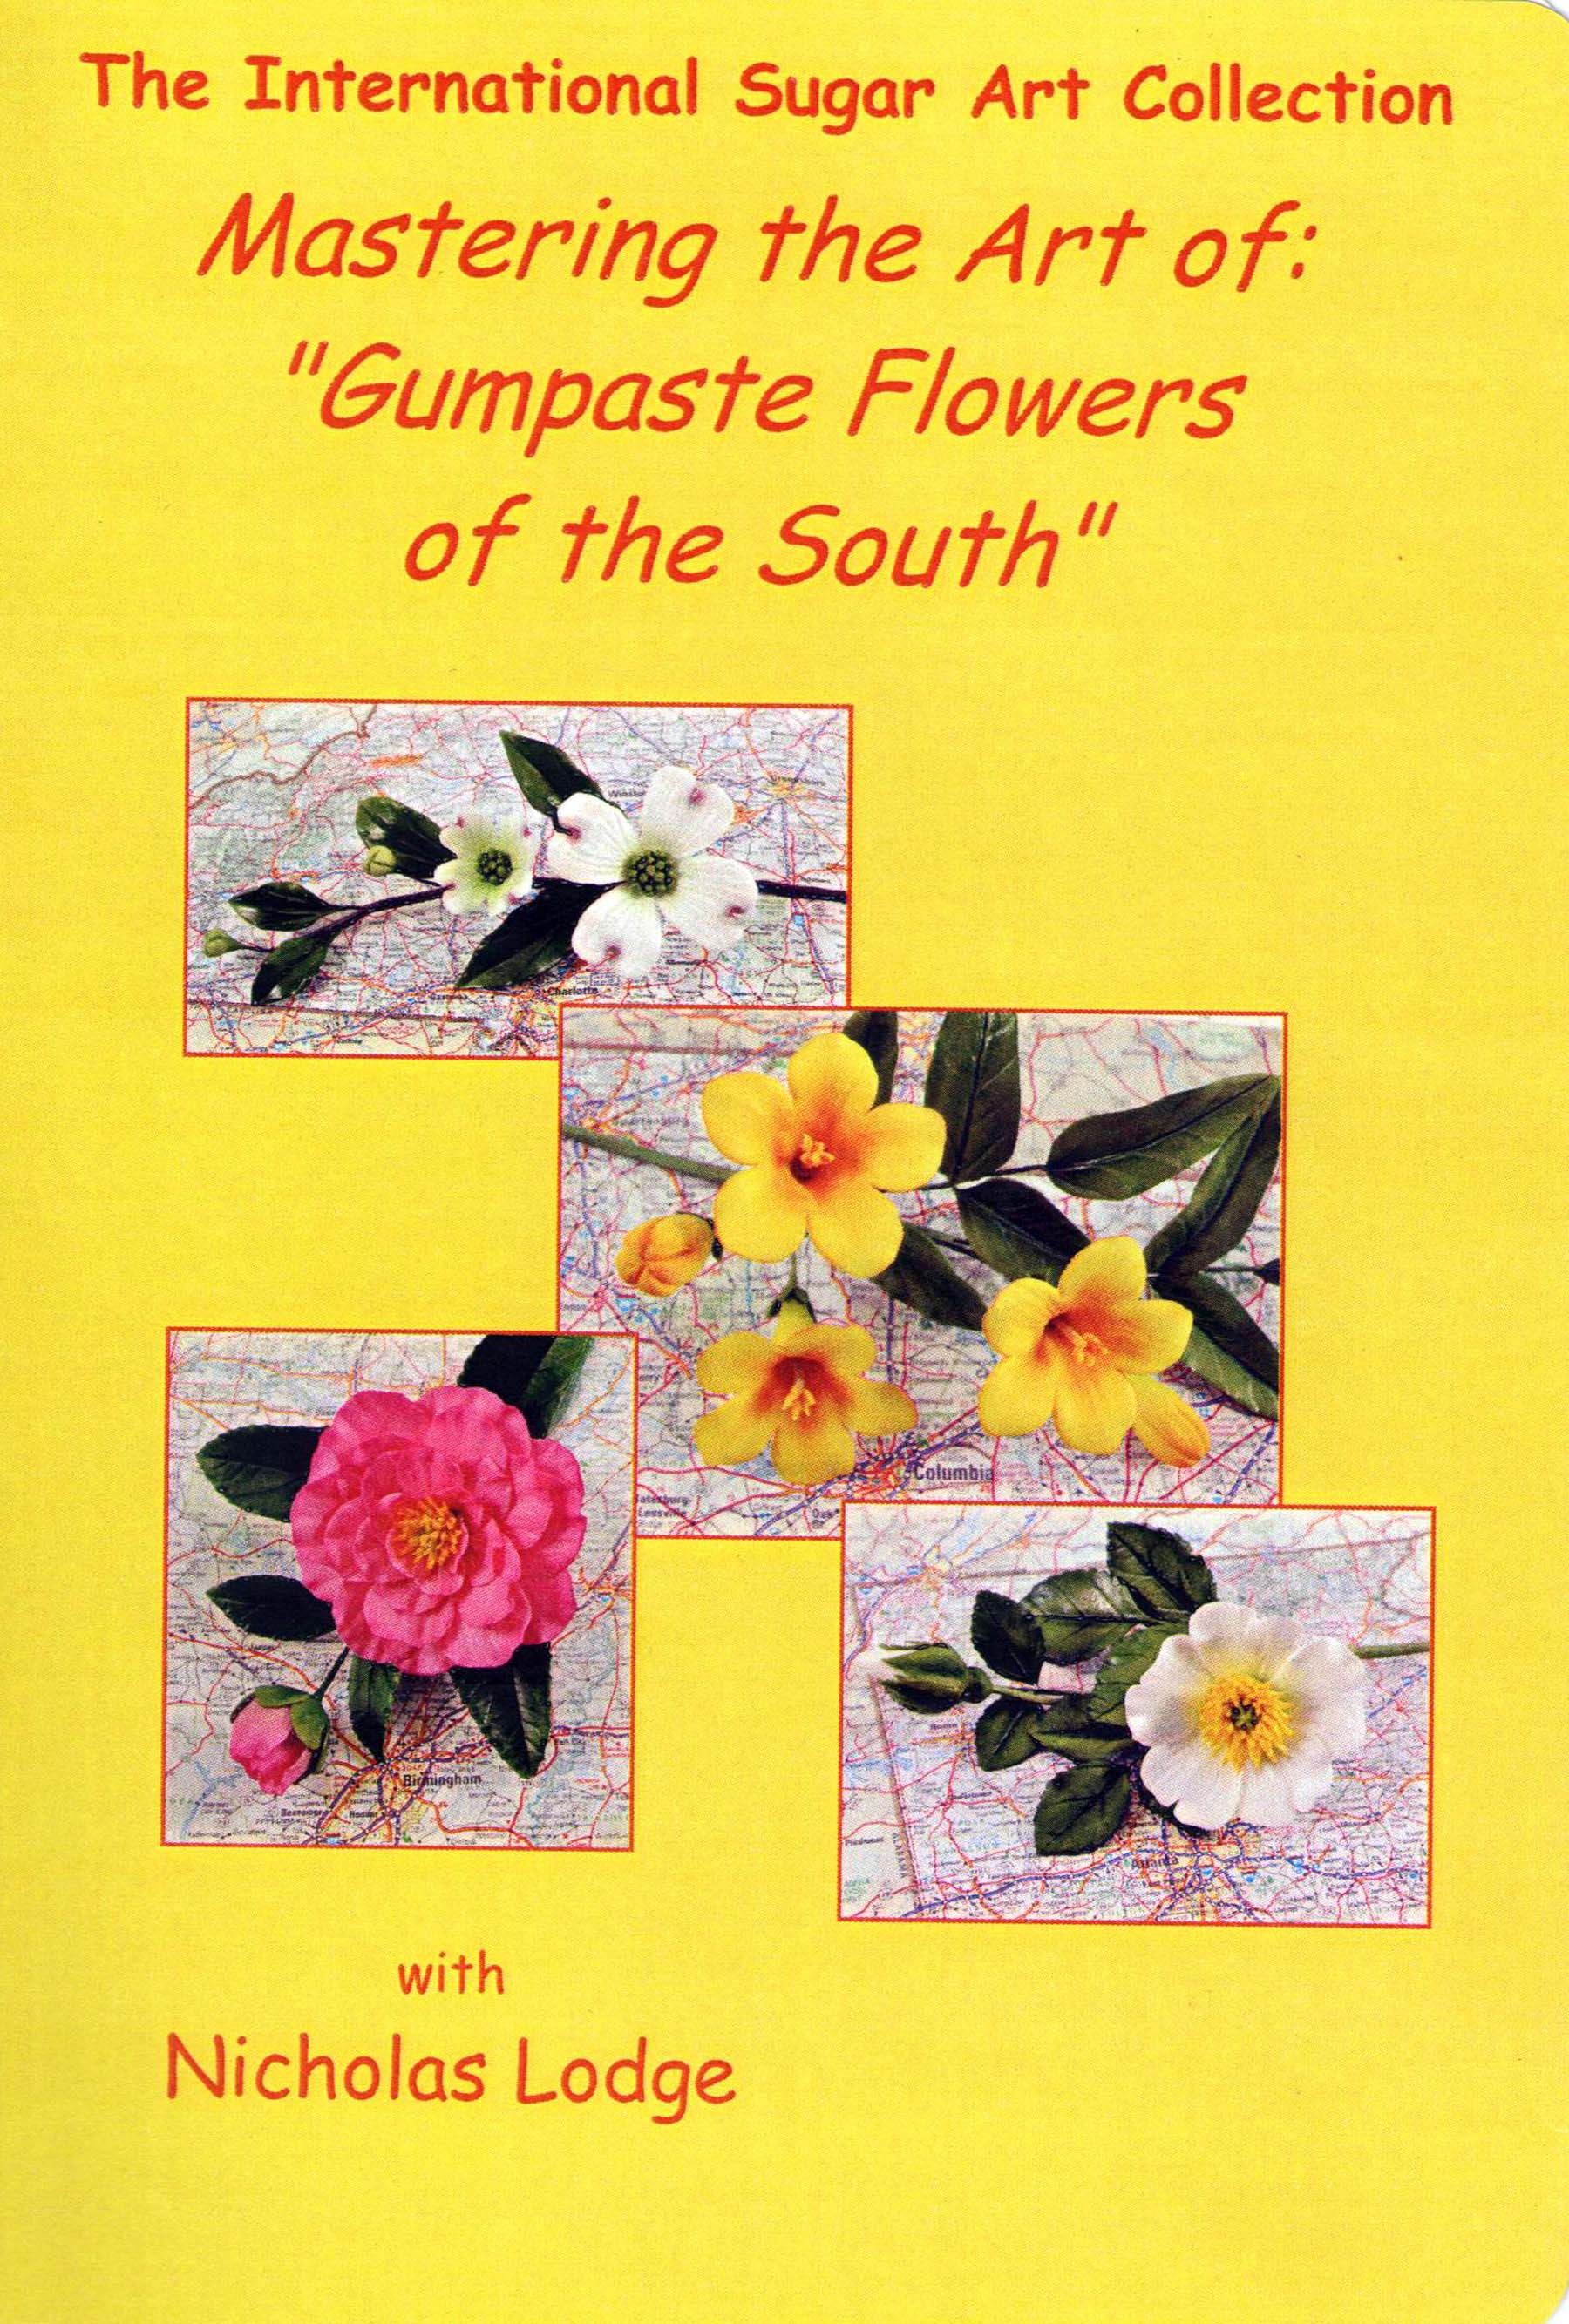 NL16 - NL Mastering the Art of Gumpaste Flowers of the South DVD